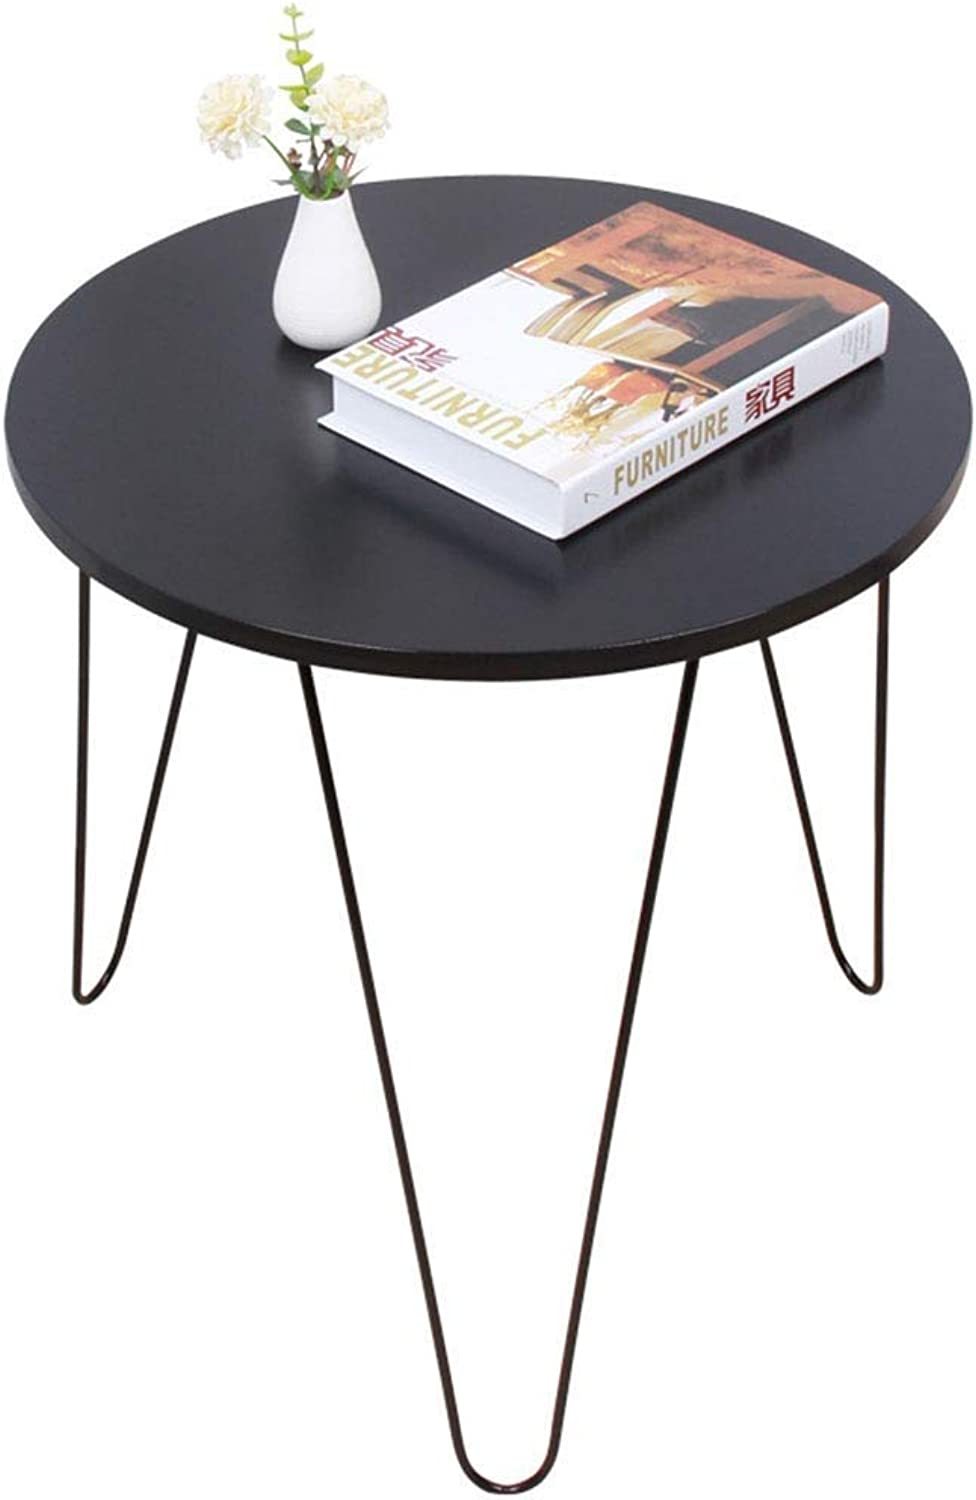 TYUIO Coffee End Tables Modern Furniture Decor Side Table for Living Room Balcony Home and Office (color   Black)